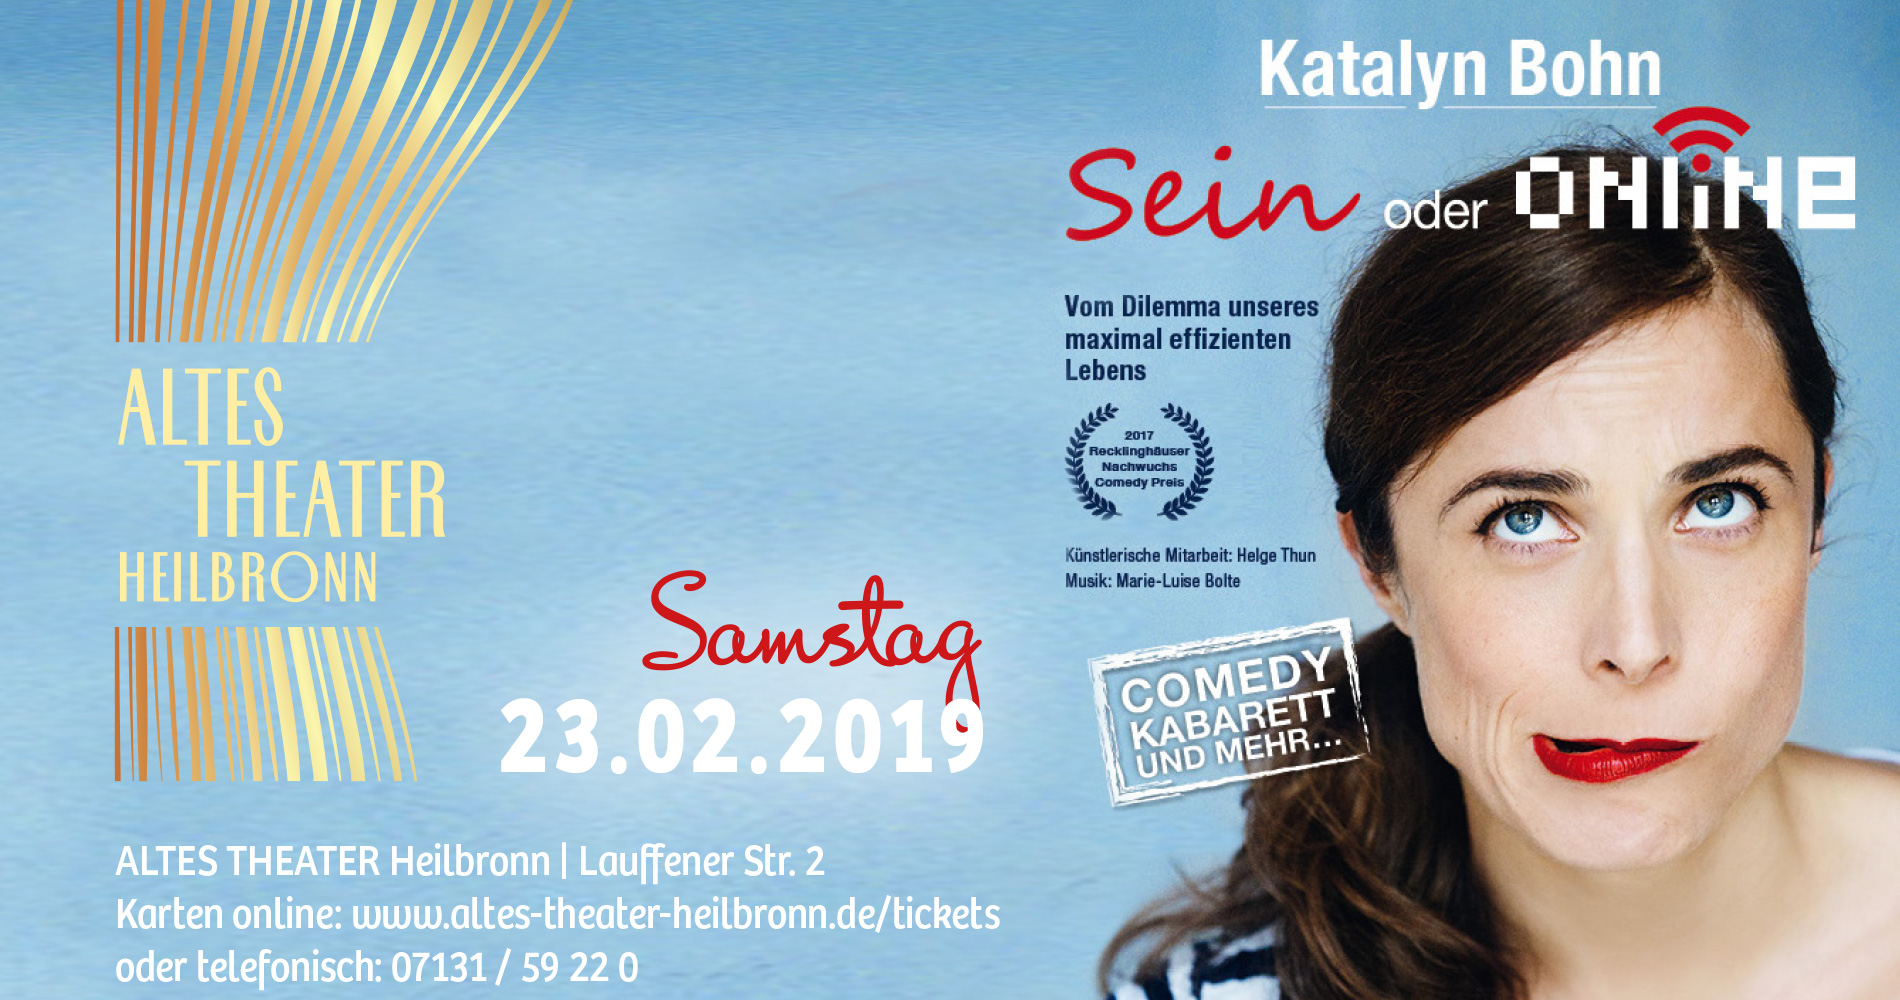 Katalyn Bohn im ALTES THEATER Heilbronn